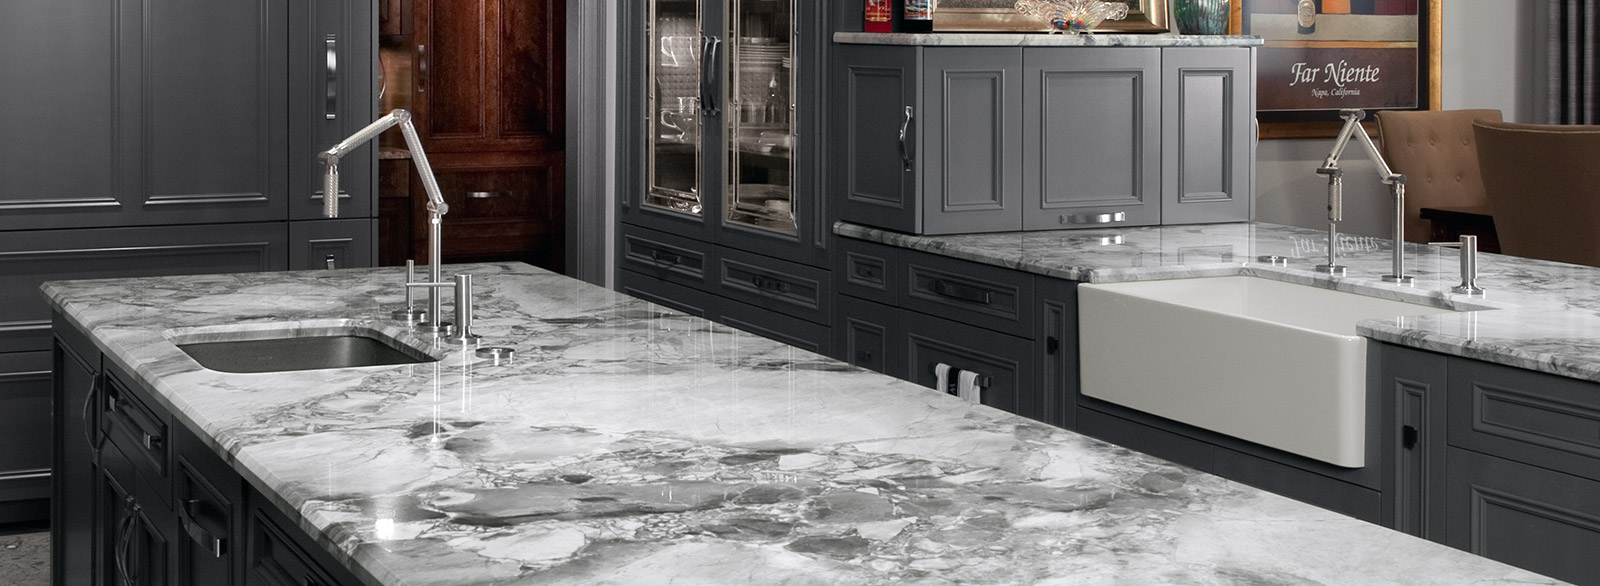 Kitchens With White Macaubas Quartzite And Dark Cabinets